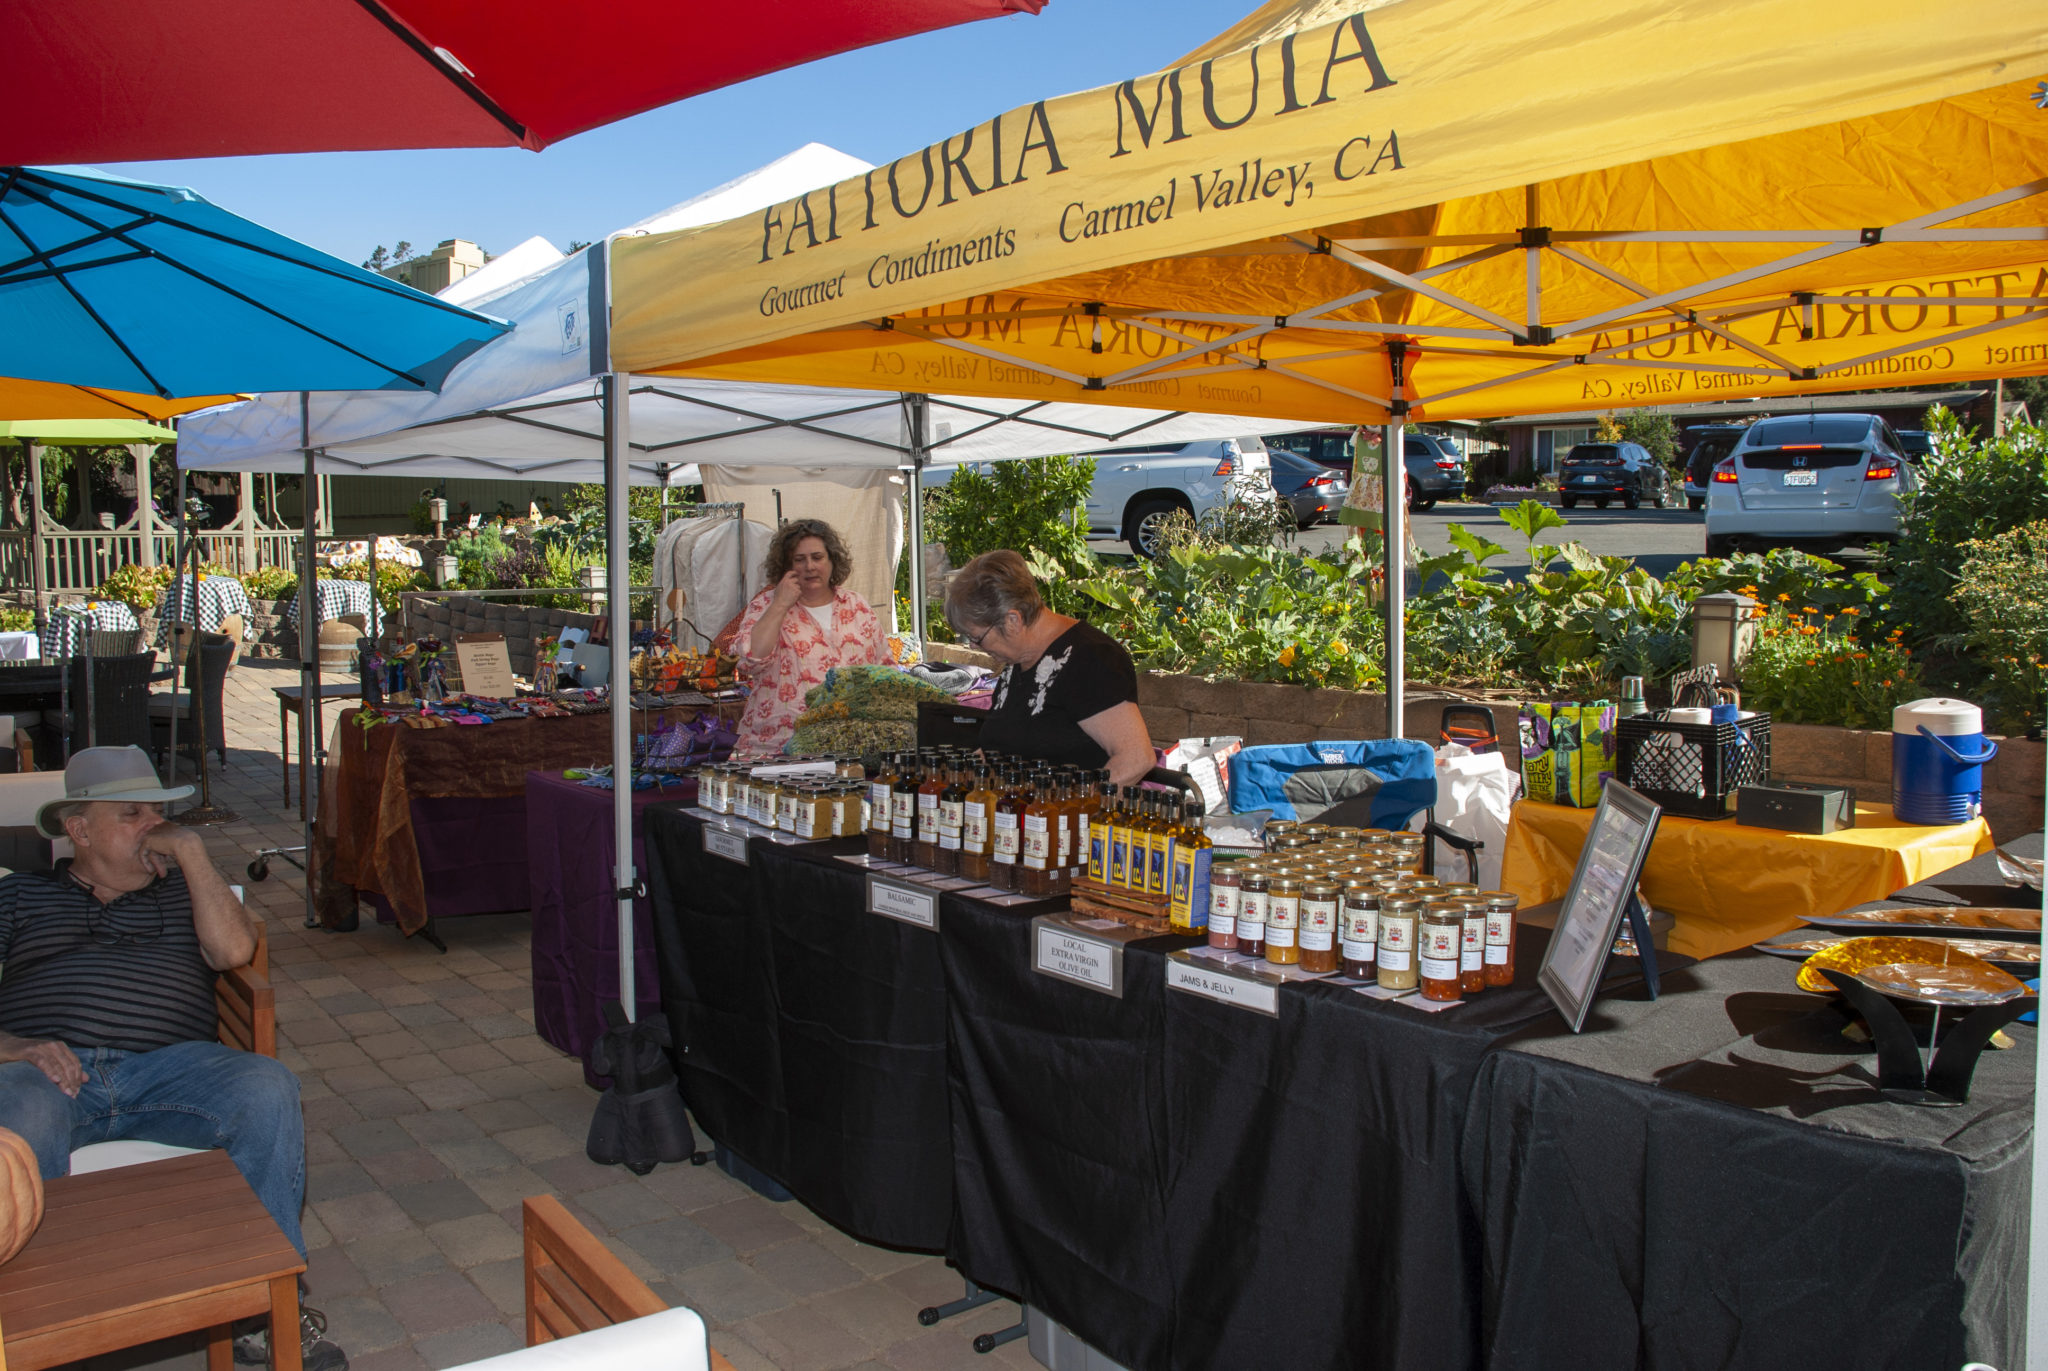 An outdoor table with food for sale - various jams/jellies - a bright yellow tent and two people working at the table.